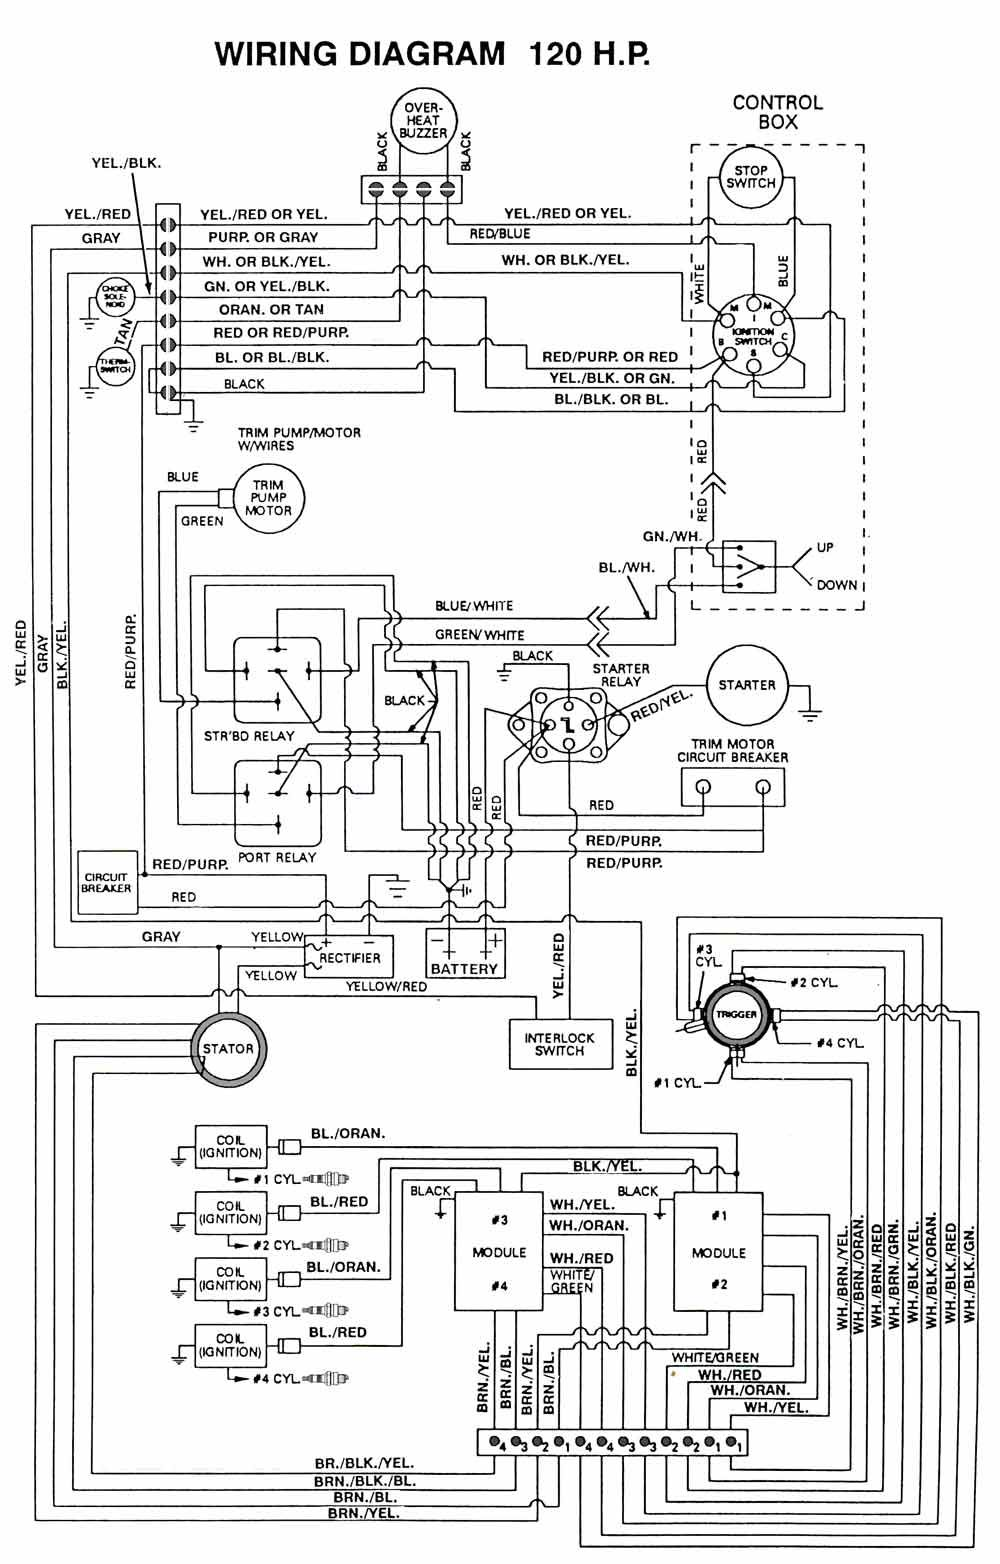 small resolution of image result for wiring diagram for 1990 mercury force 120 hp outboard motor